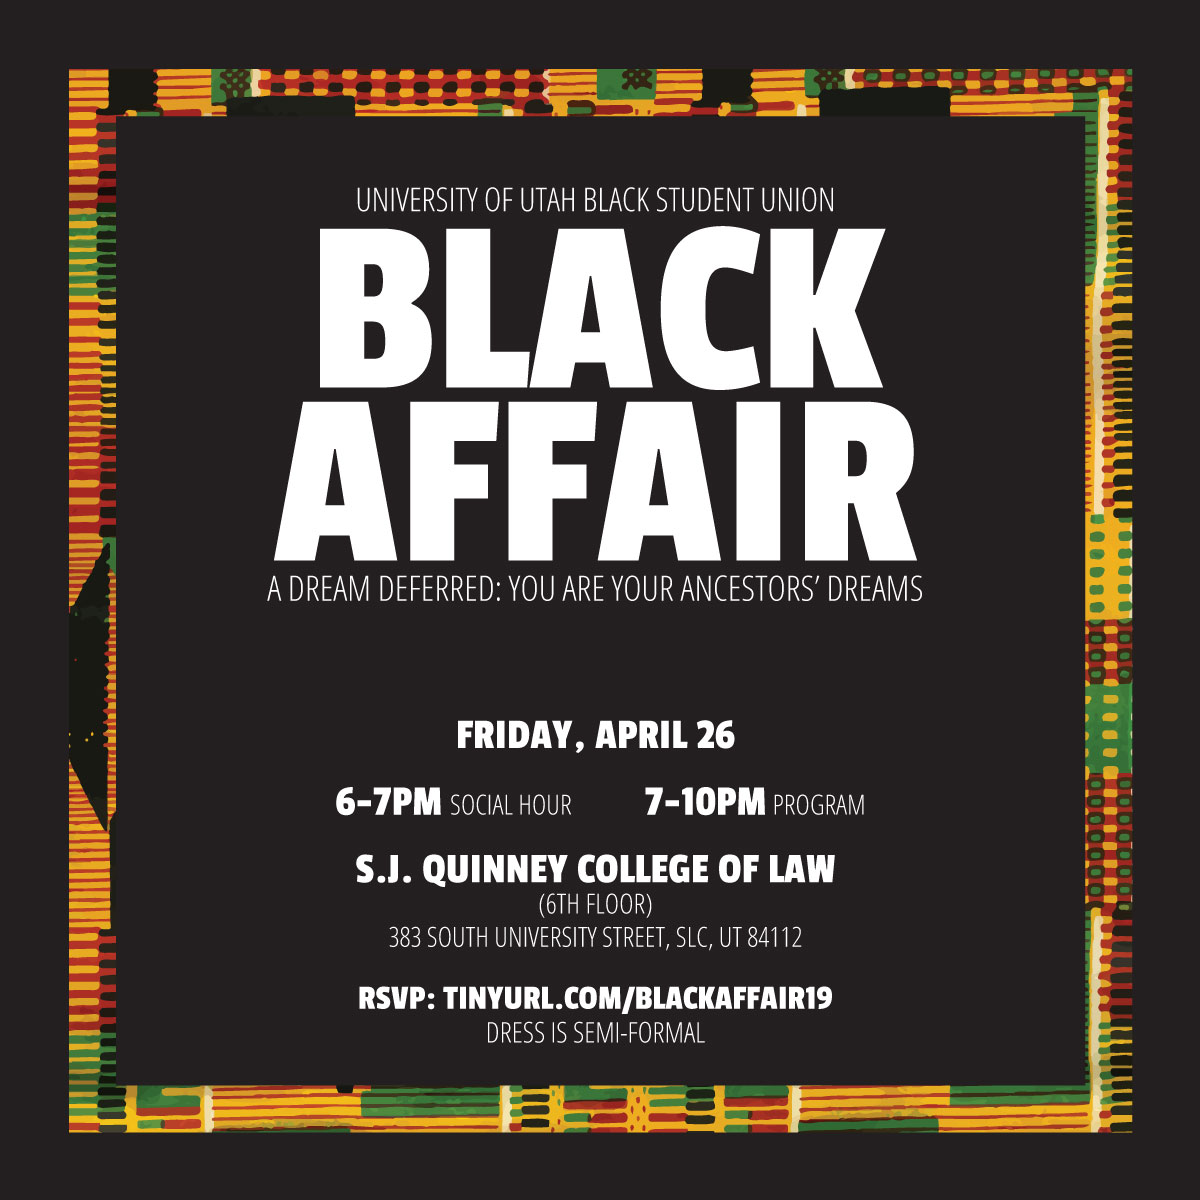 University of Utah Black Student Union presents: Black Affair - A Dream Deferred: You are Your Ancestors' Dreams on Friday April 26.